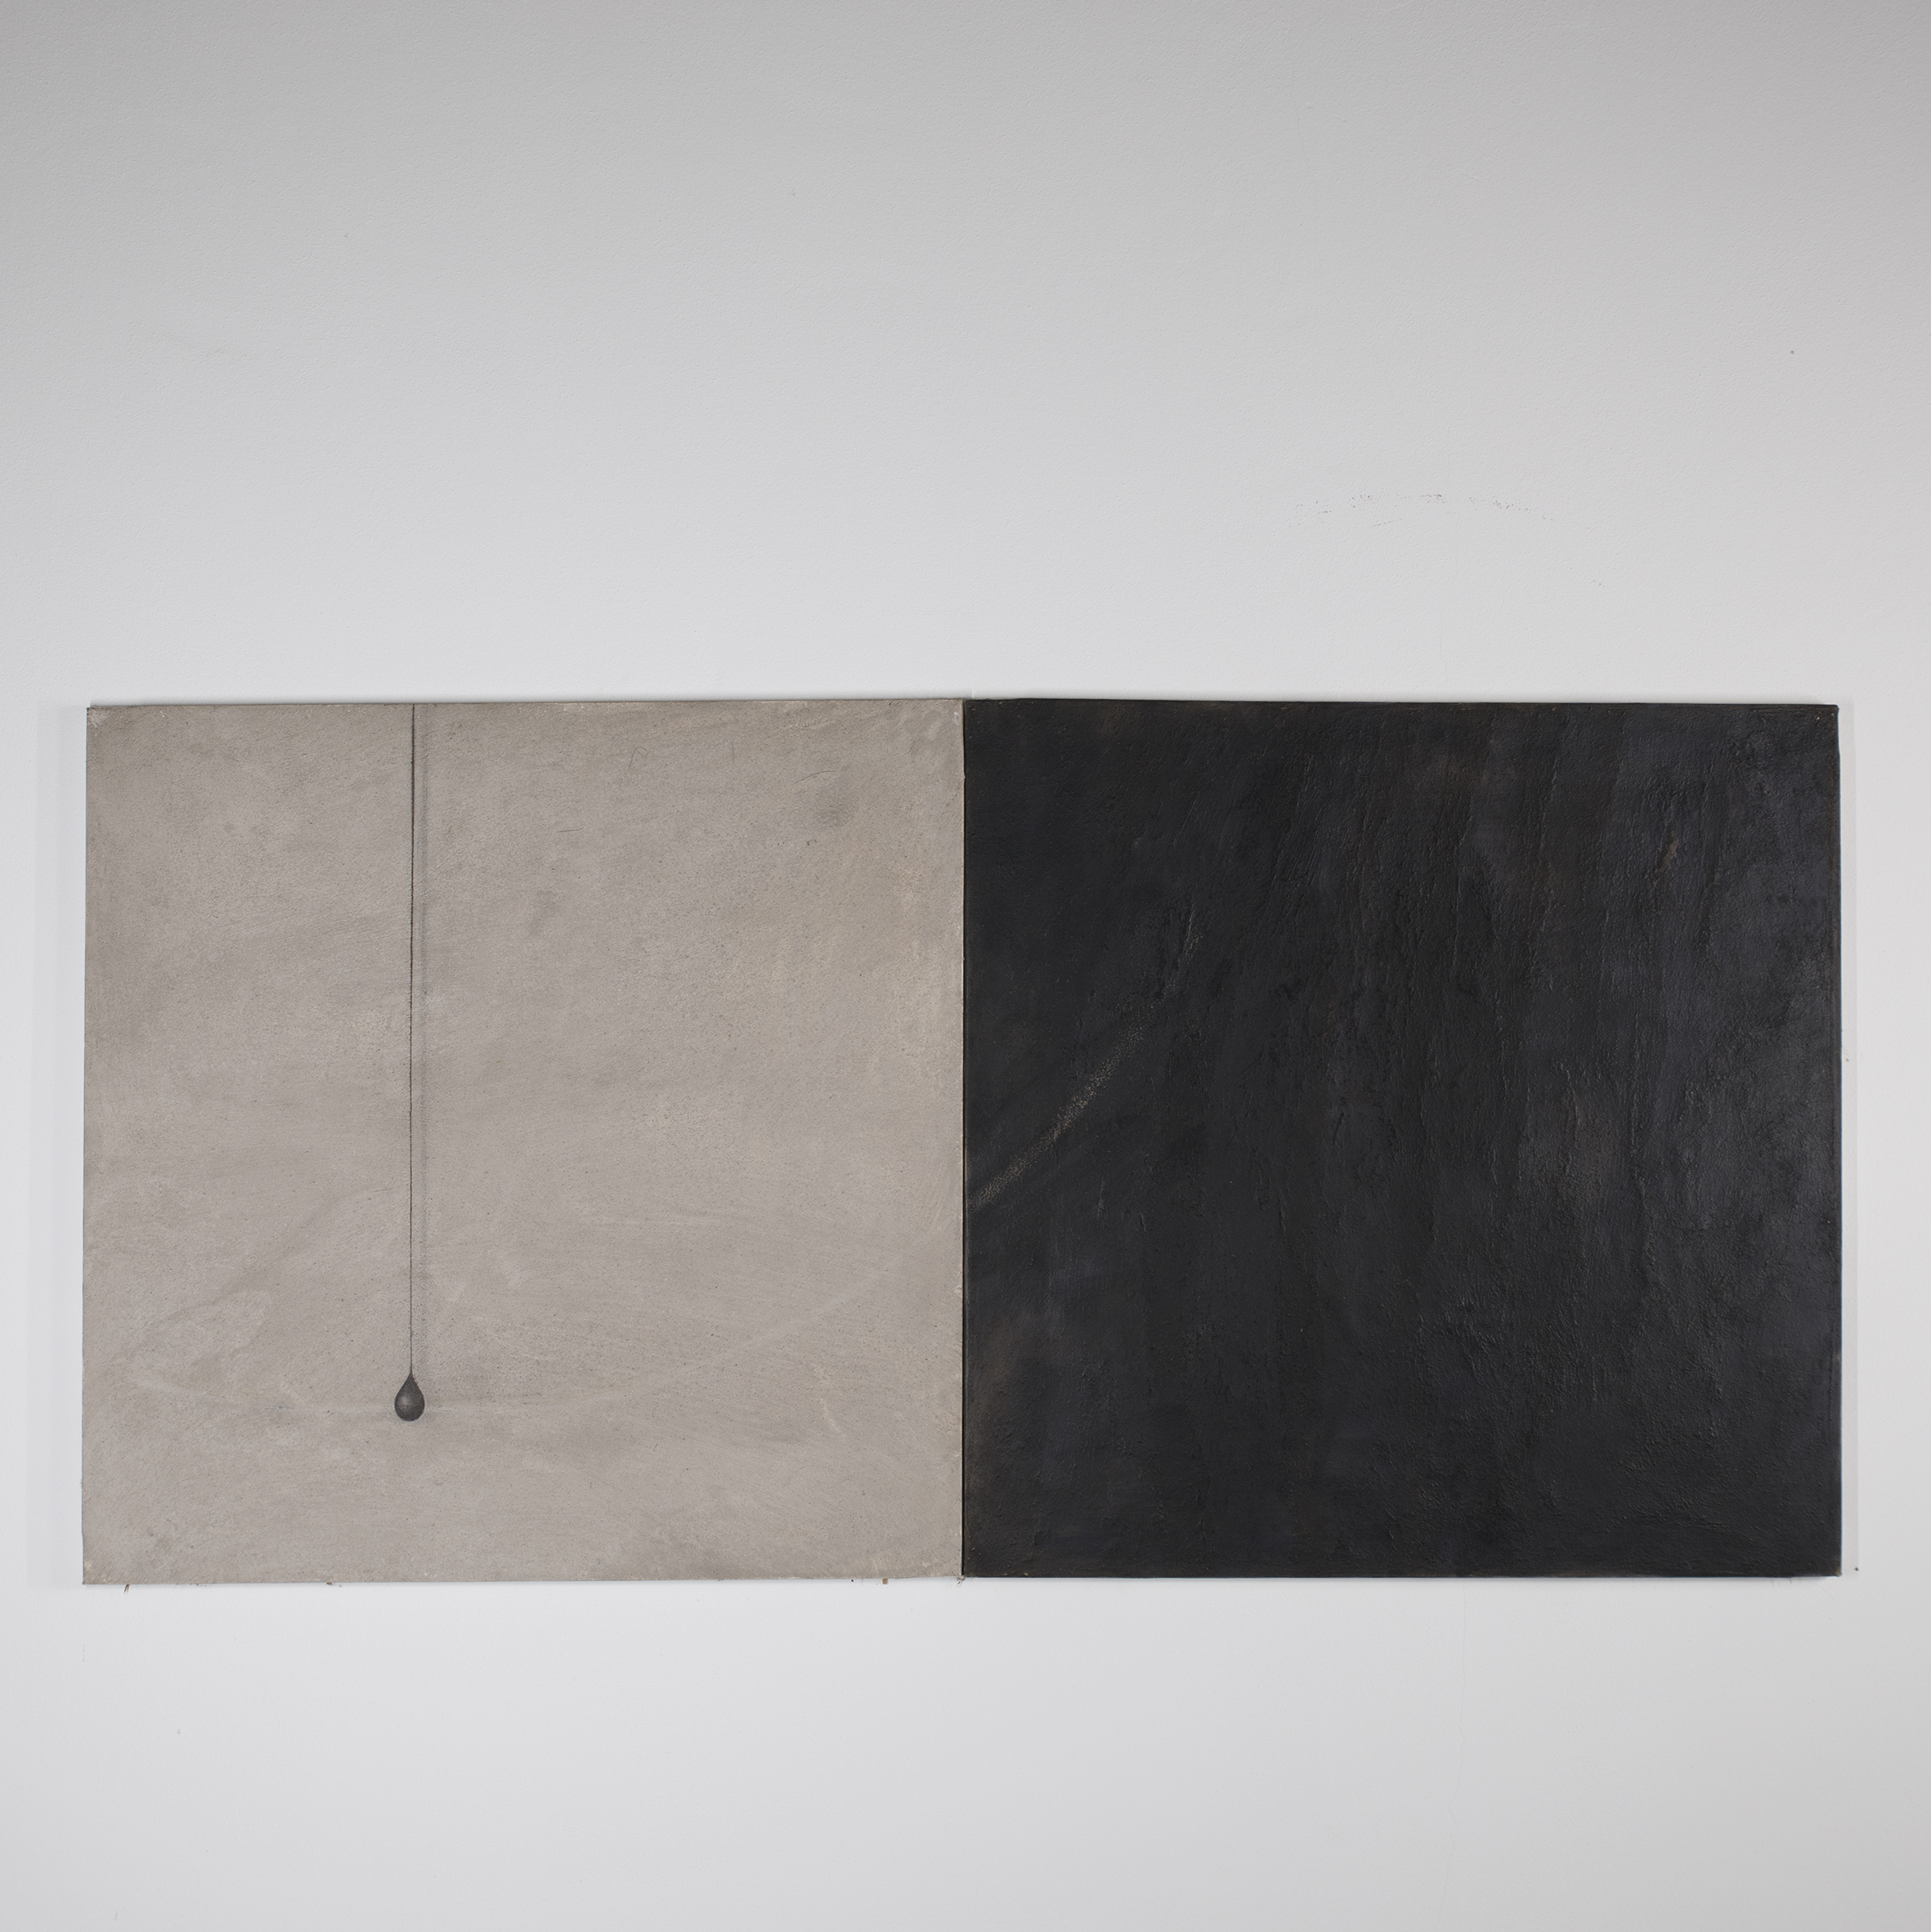 tracce di tempo - works painting 1974-1988